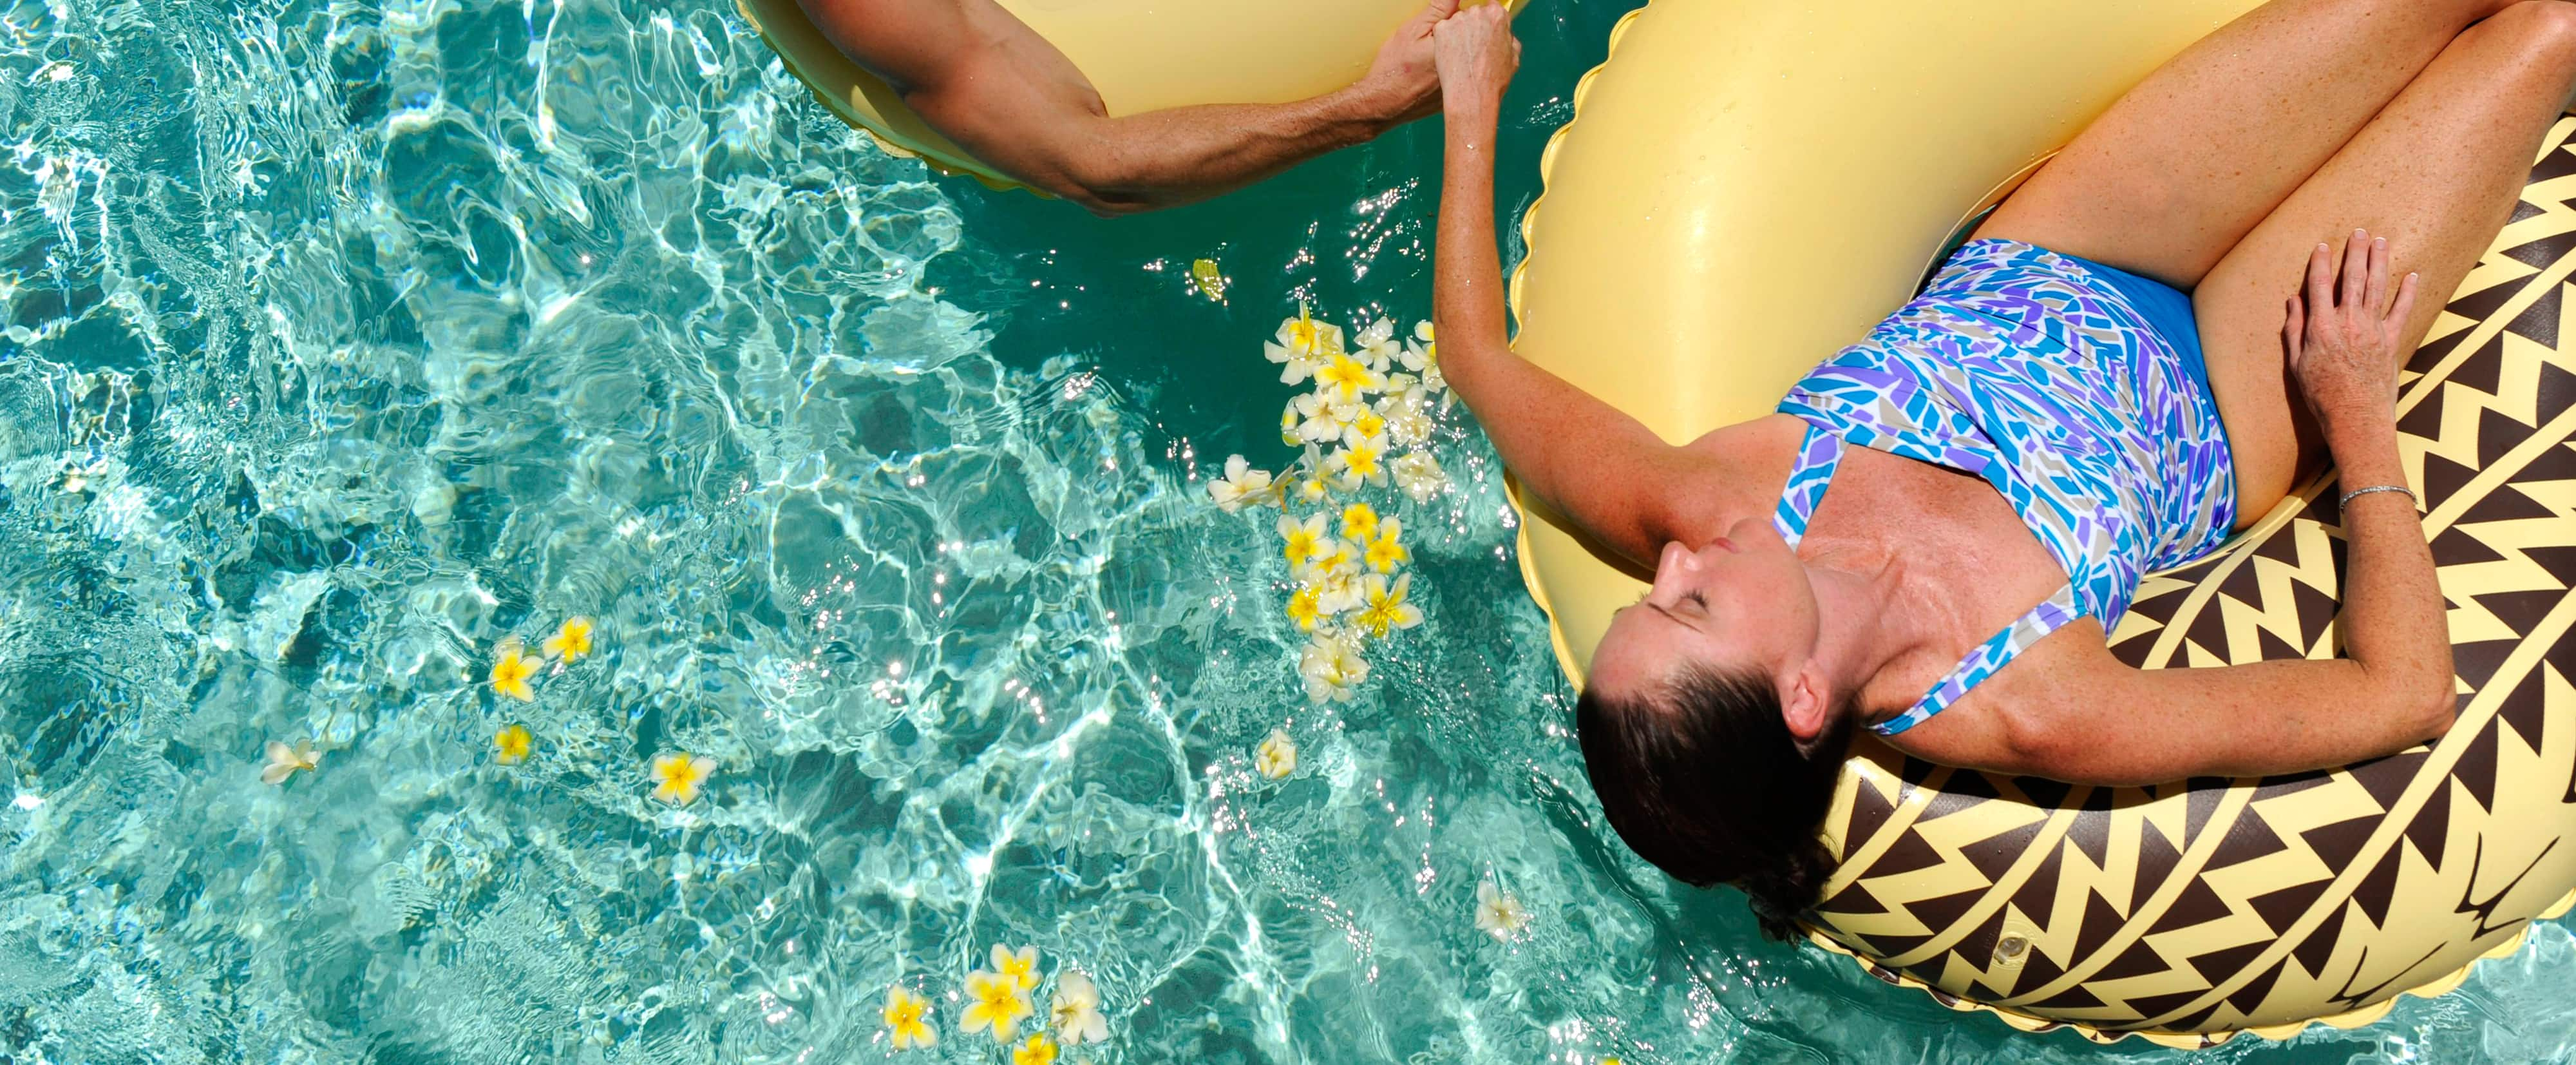 A woman in a swimsuit lying on an inner tube holds a man's hand in a pool with floating yellow flowers